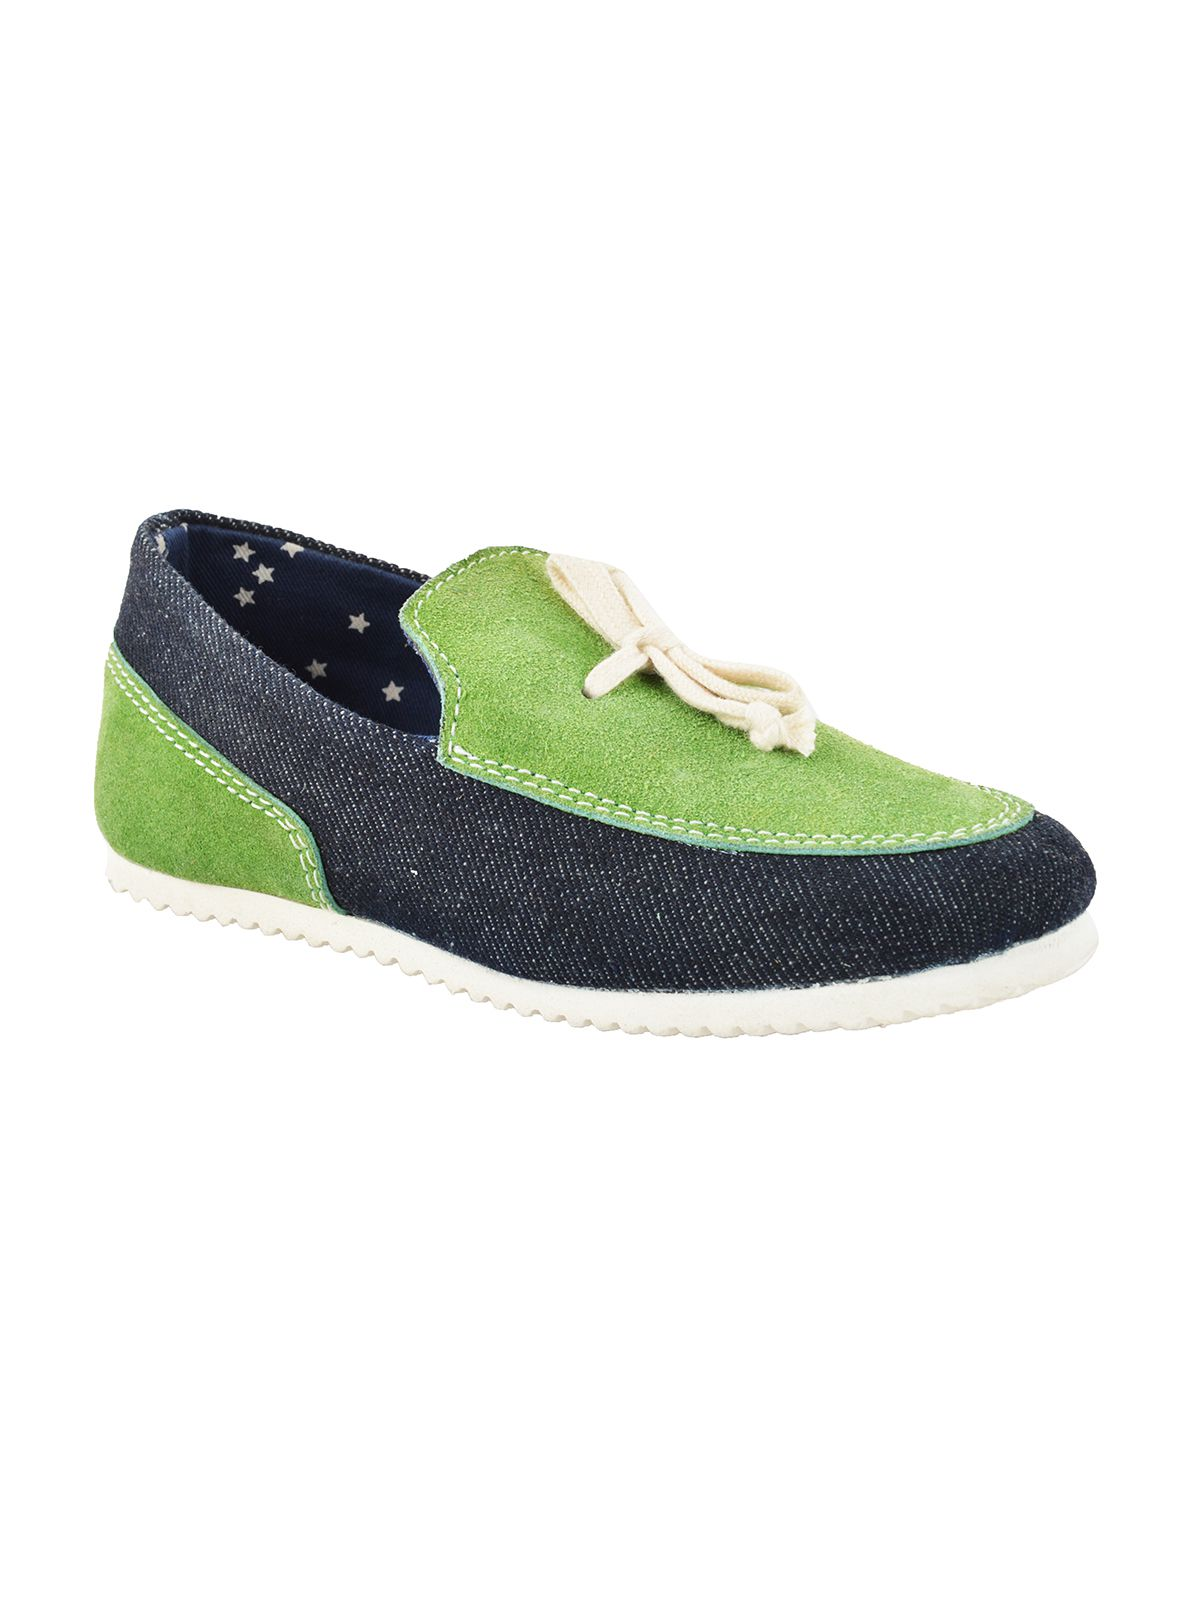 Willywinkies Eva Green Casual Shoes For Girls fast delivery for sale 8rVgd5CsP